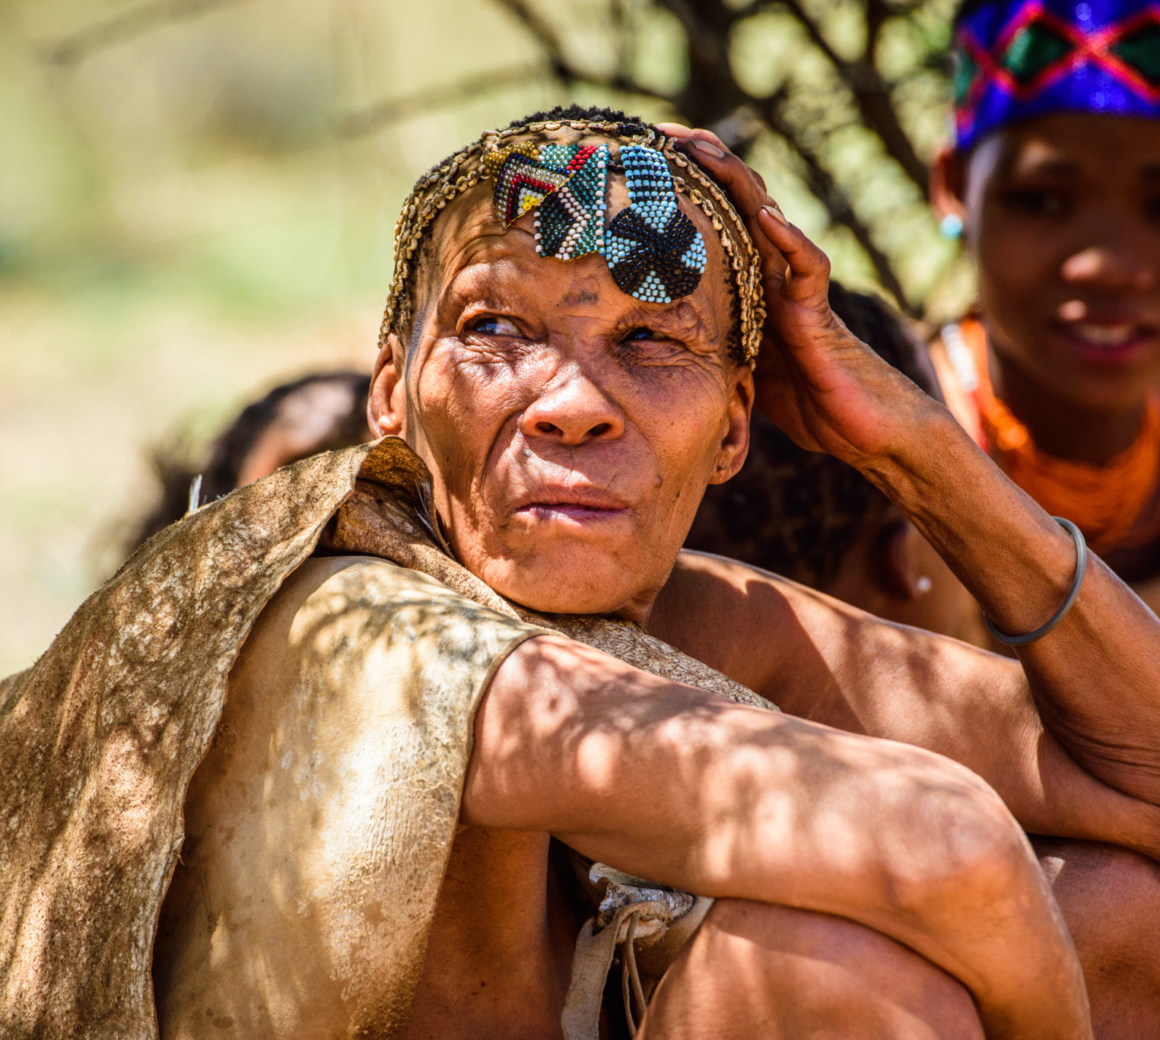 The Changing Women's Rights of Africa's San People